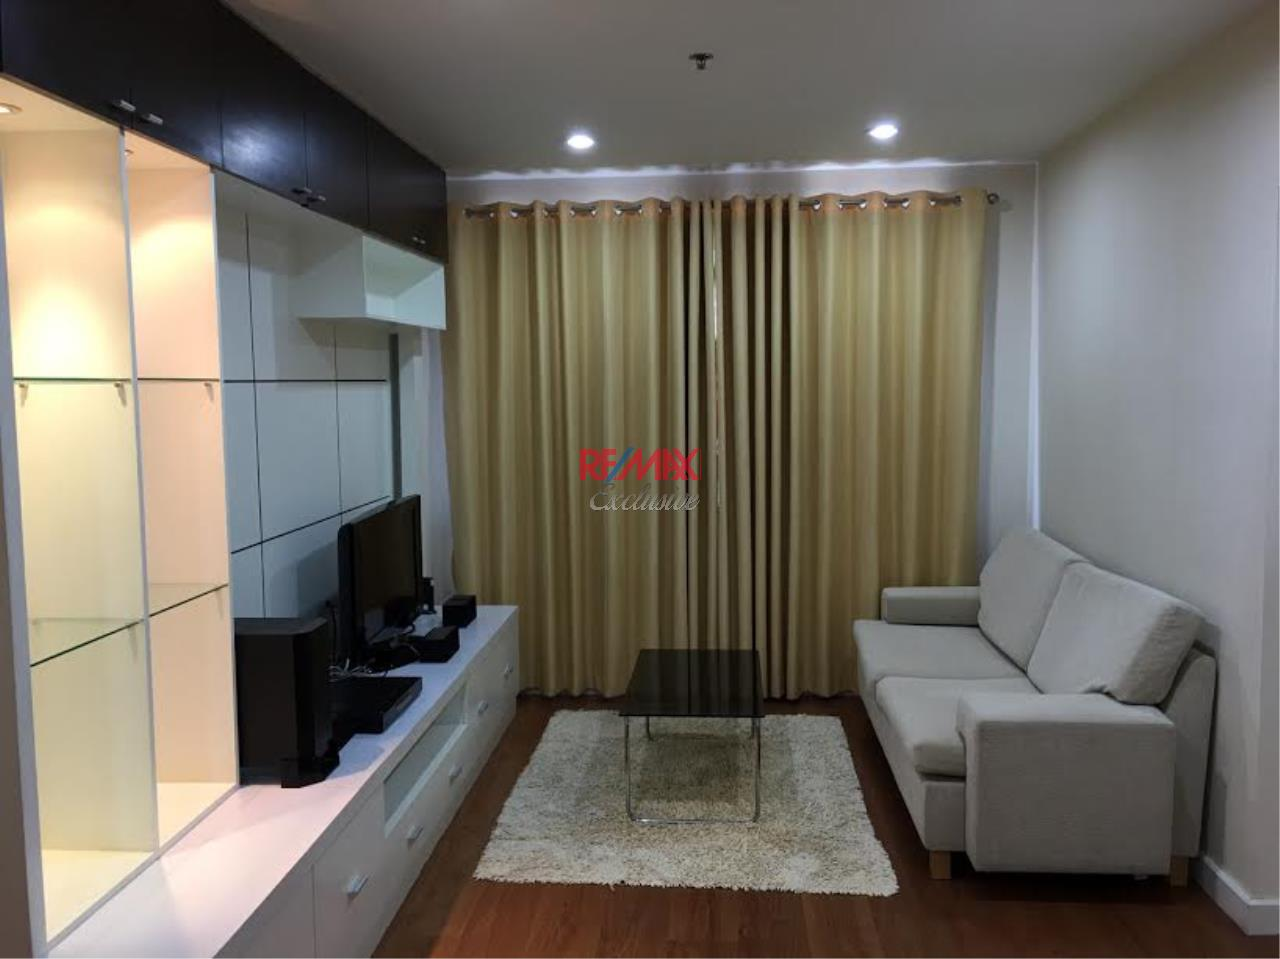 RE/MAX Exclusive Agency's 1 Bedroom at Condo One X Sukhumvit 26 For Rent 30,000 THB 1